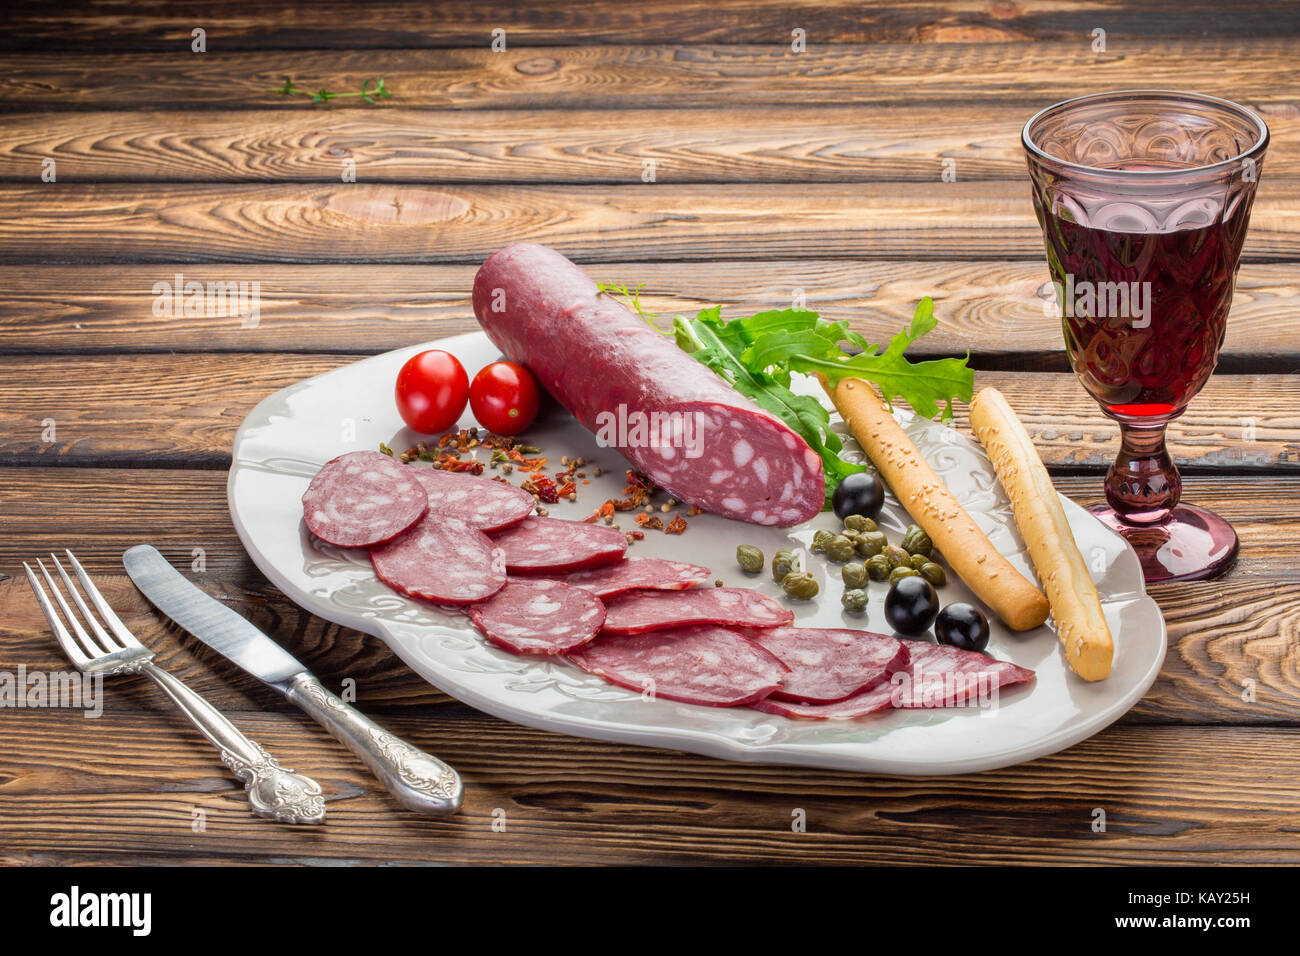 Sausage with red wine, olives, capers, tomates and harbs over wooden background - Stock Image